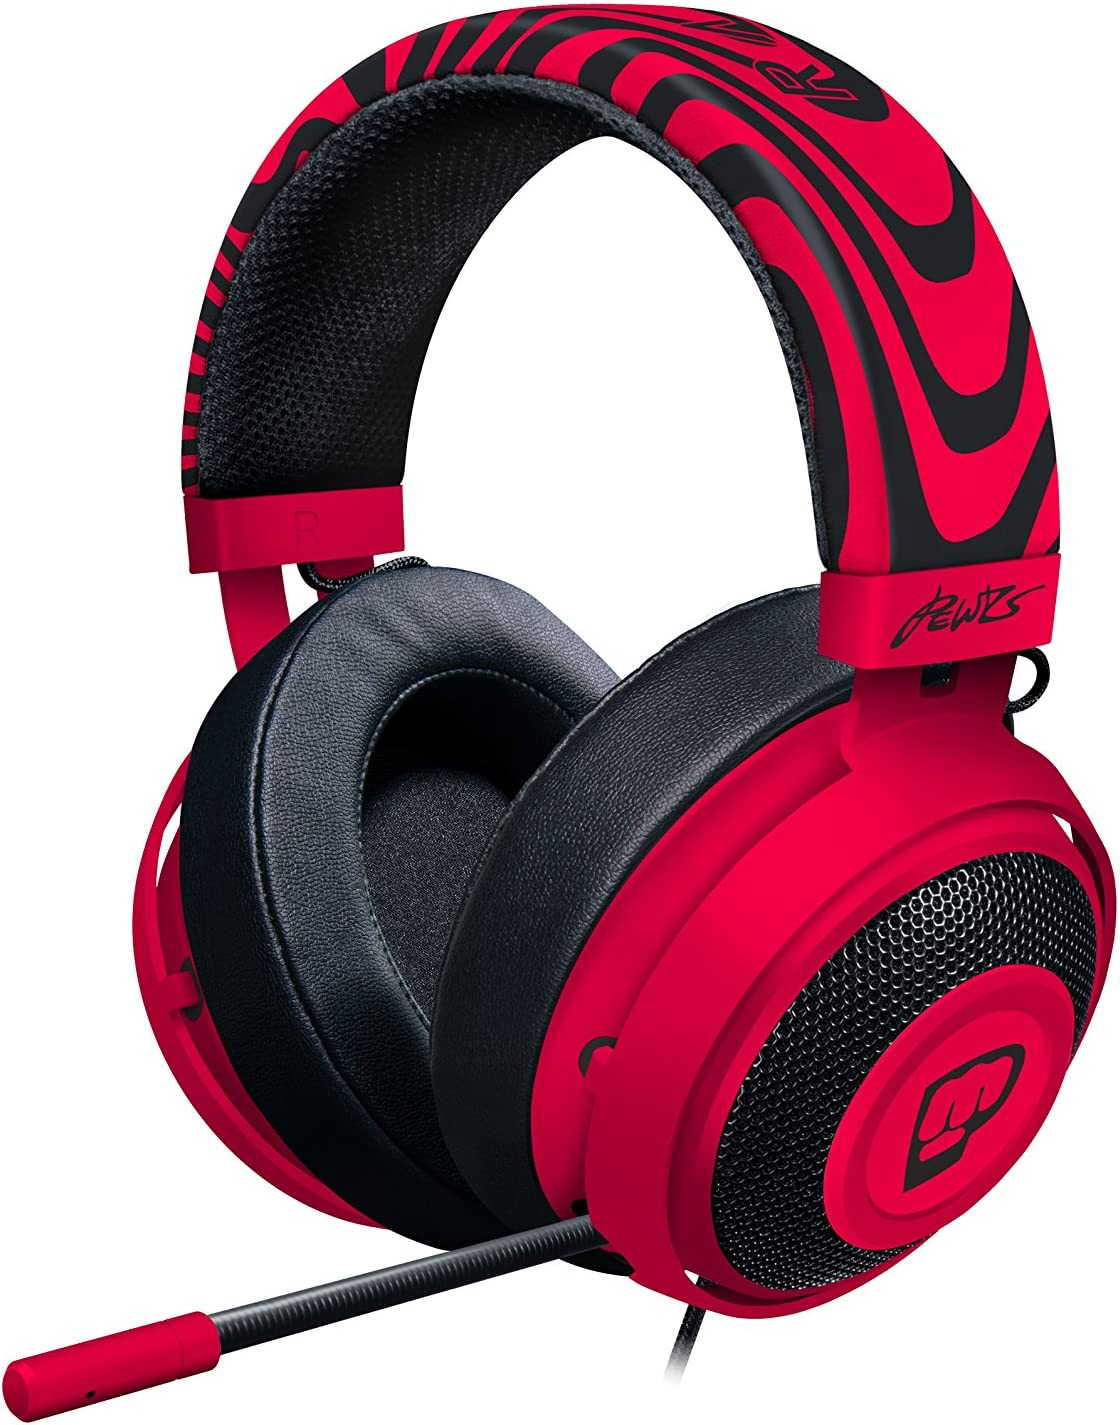 Razer Kraken Pro V2: Lightweight Aluminum Headband - Retractable Mic - In-Line Remote - Gaming Headset Works with PC, PS4, Xbox One, Switch, & Mobile Devices - Pewdiepie Edition - RZ04-02050800-R3M1